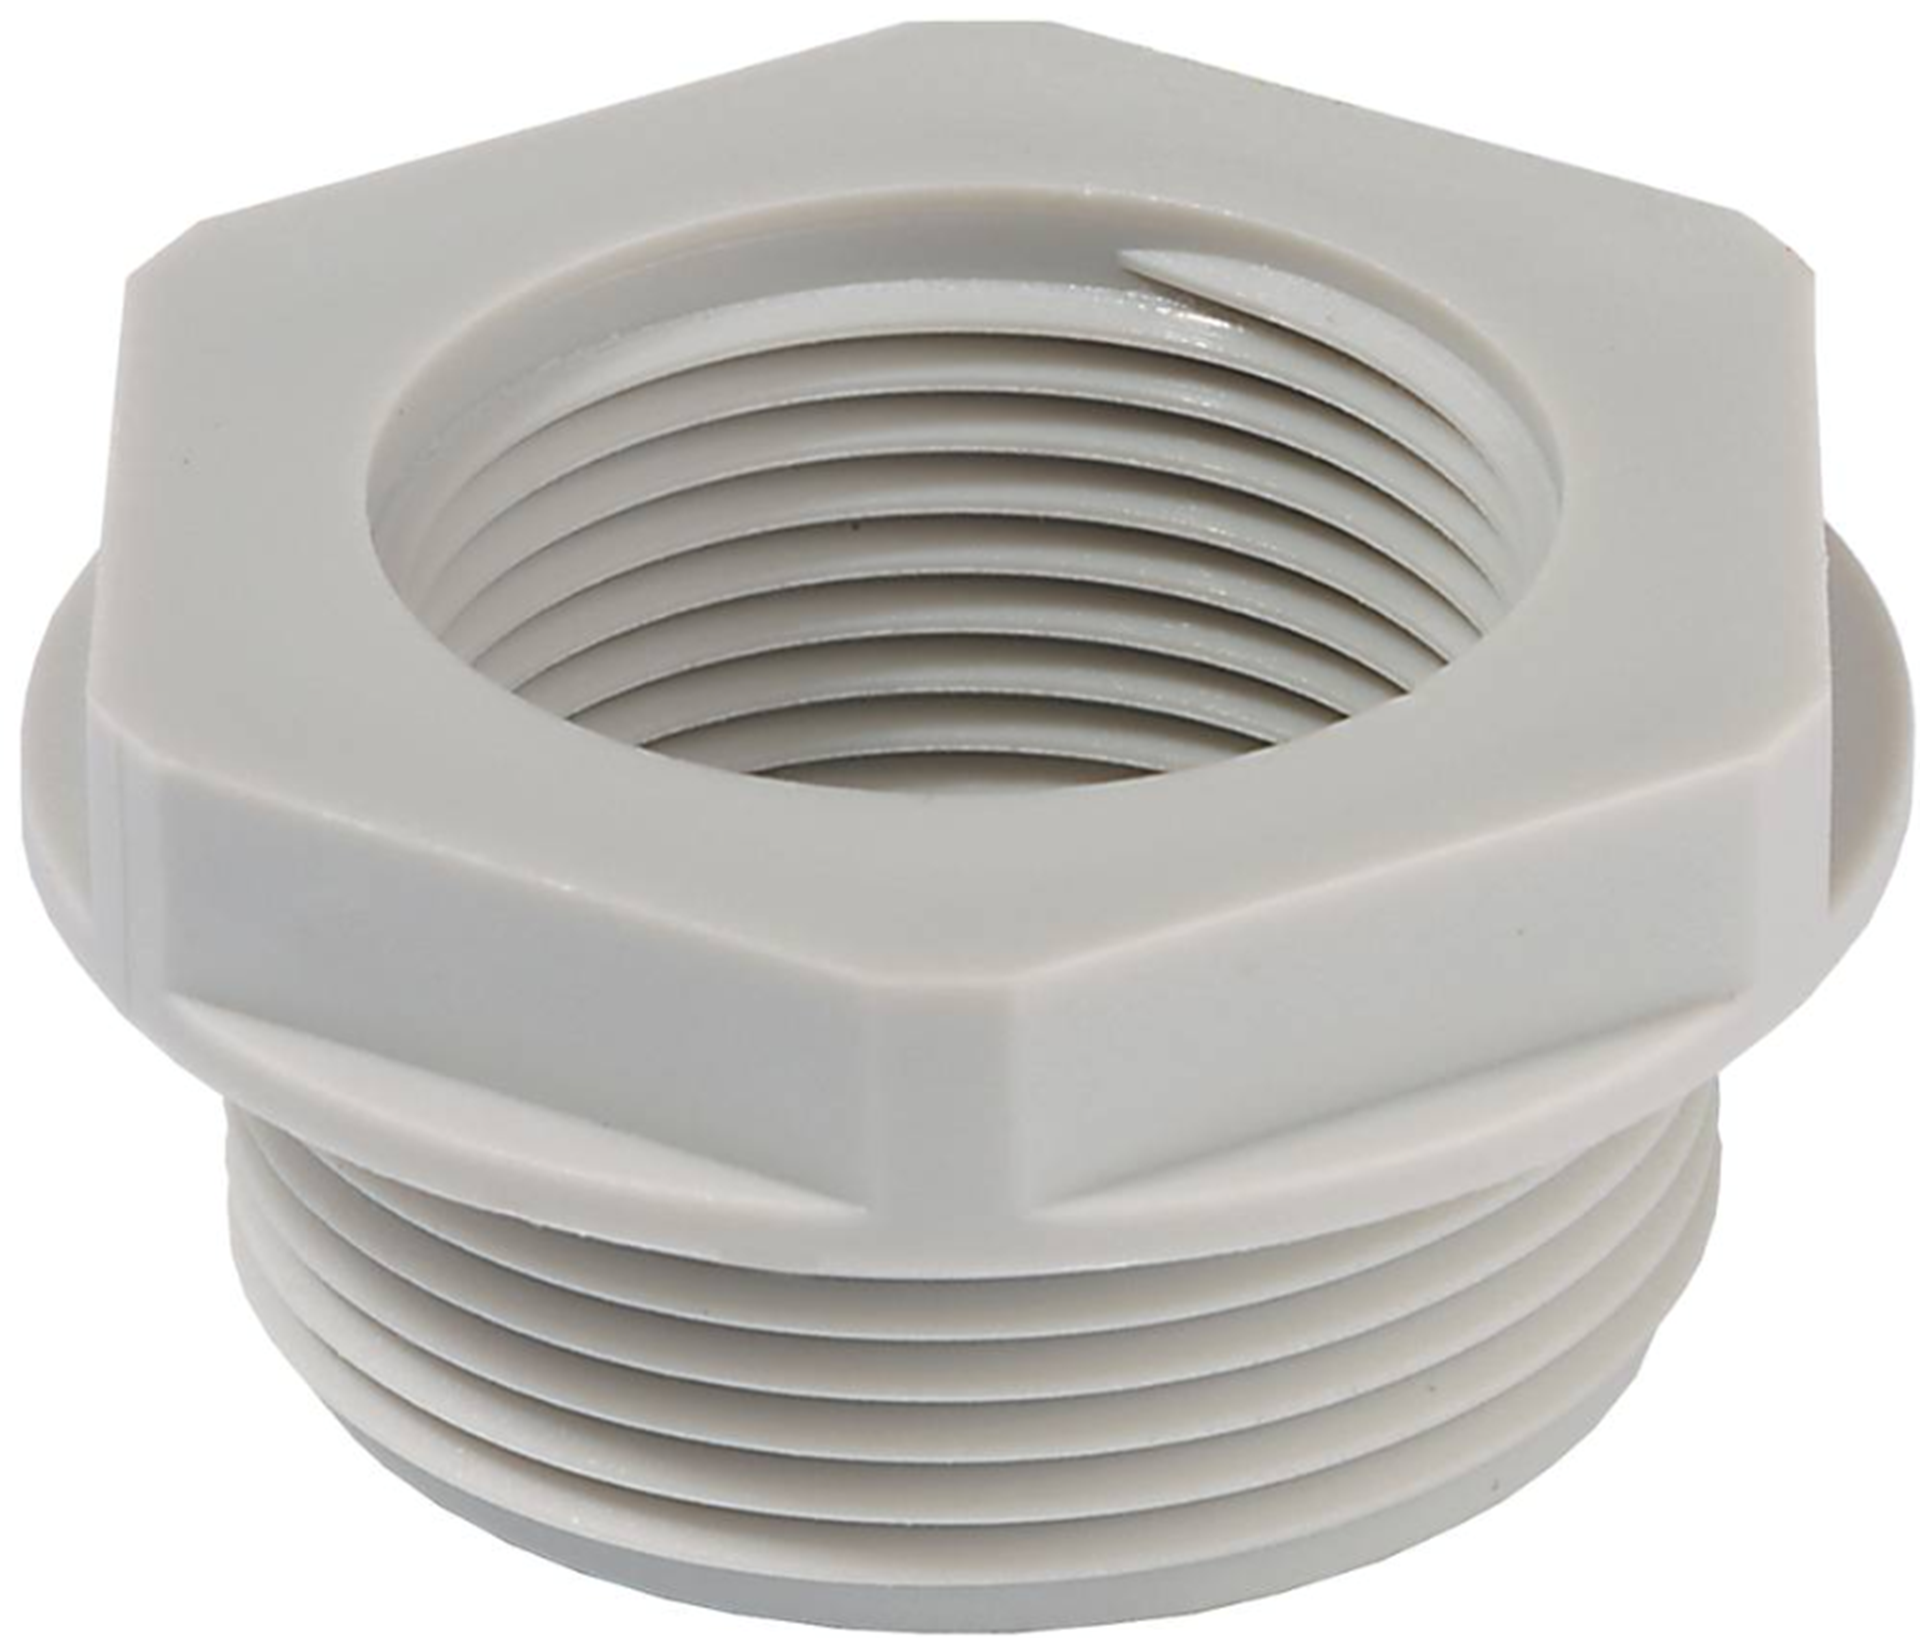 Wiska KRM 32/16 Reduction Adapter LG 10063583